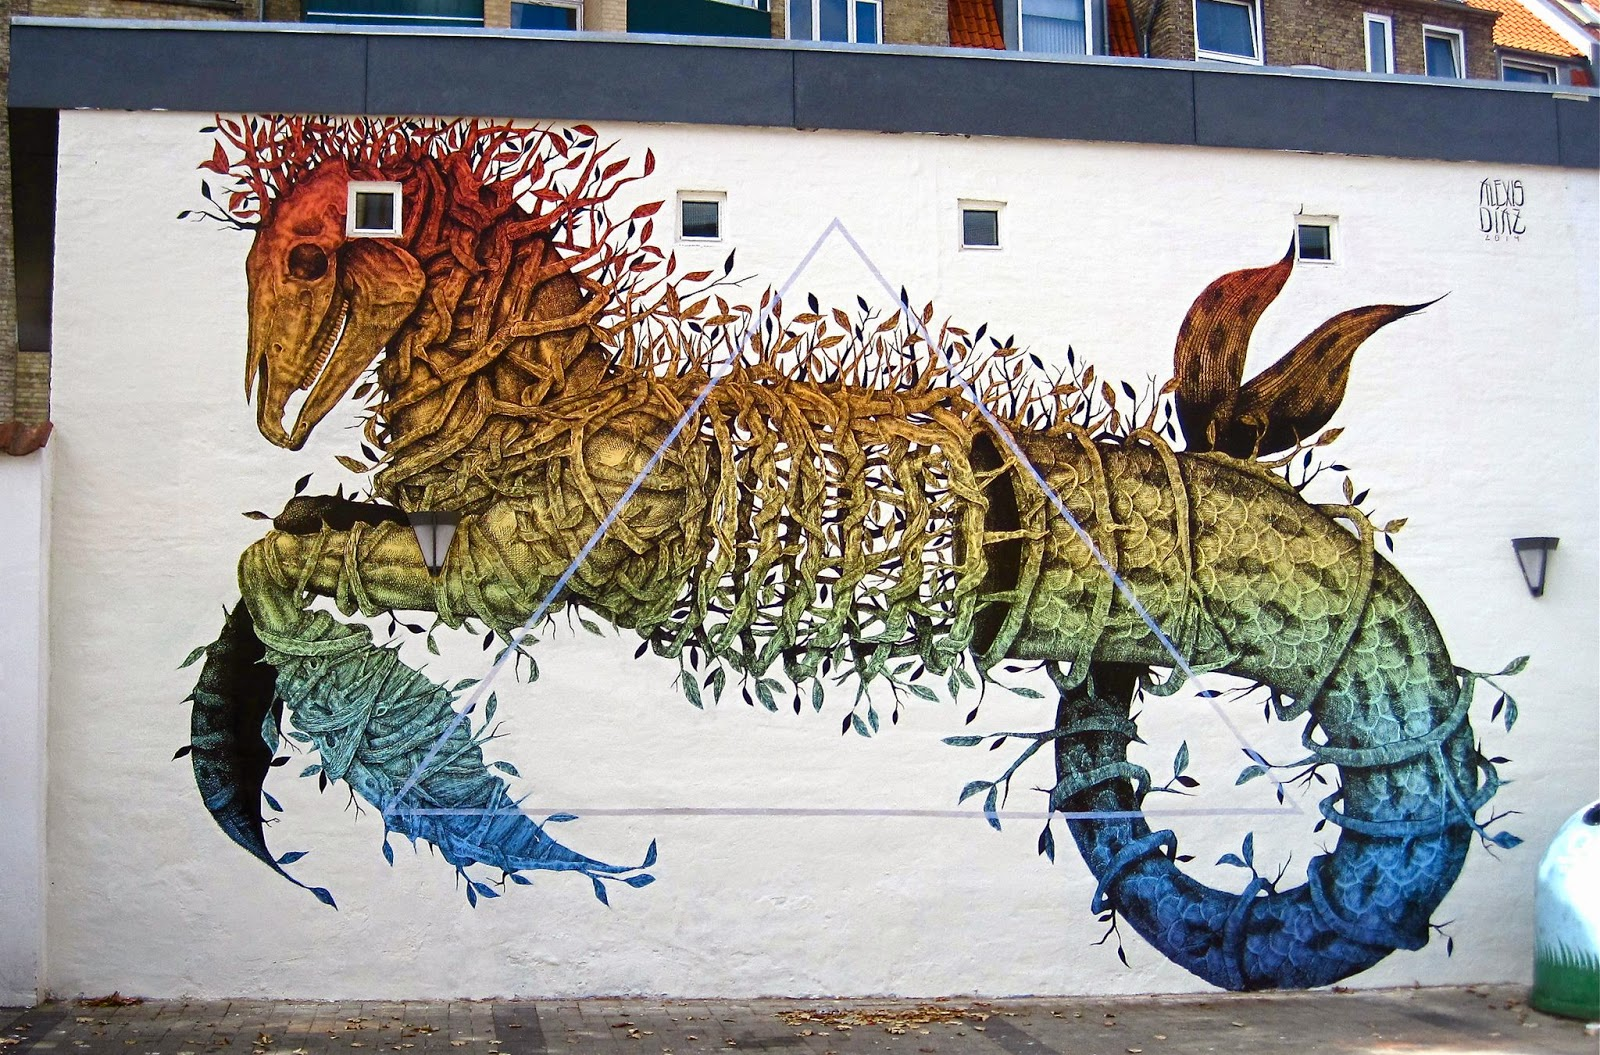 Our friend Alexis Diaz was also invited to paint on the streets of Aalborg in Denmark for the first edition of We Aart Street Art Festival.